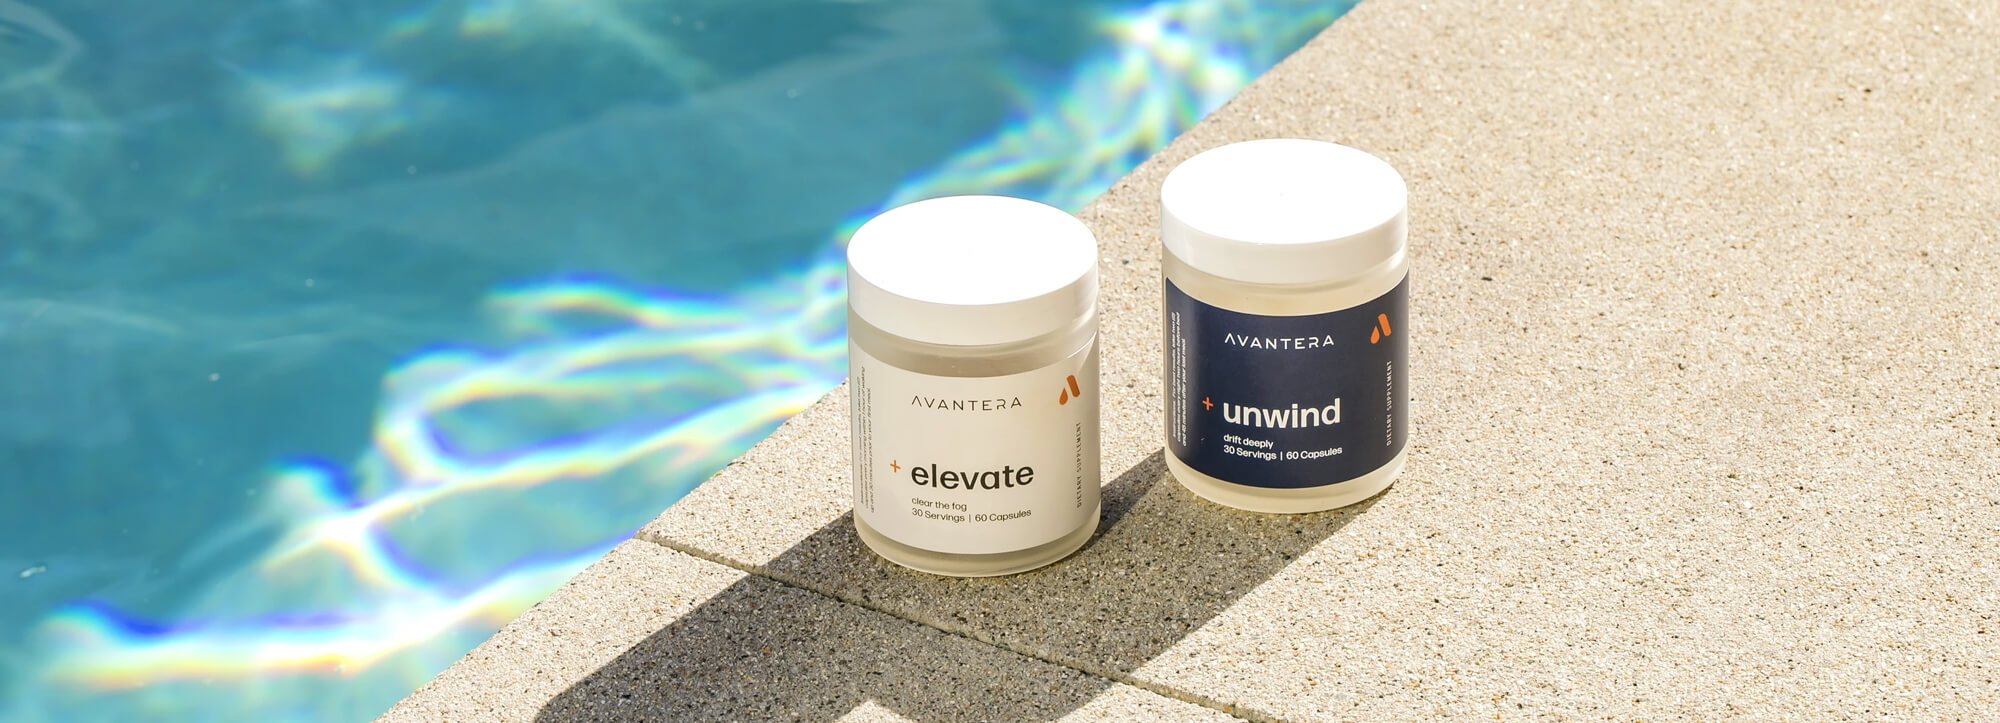 Avantera Nootropic Supplements